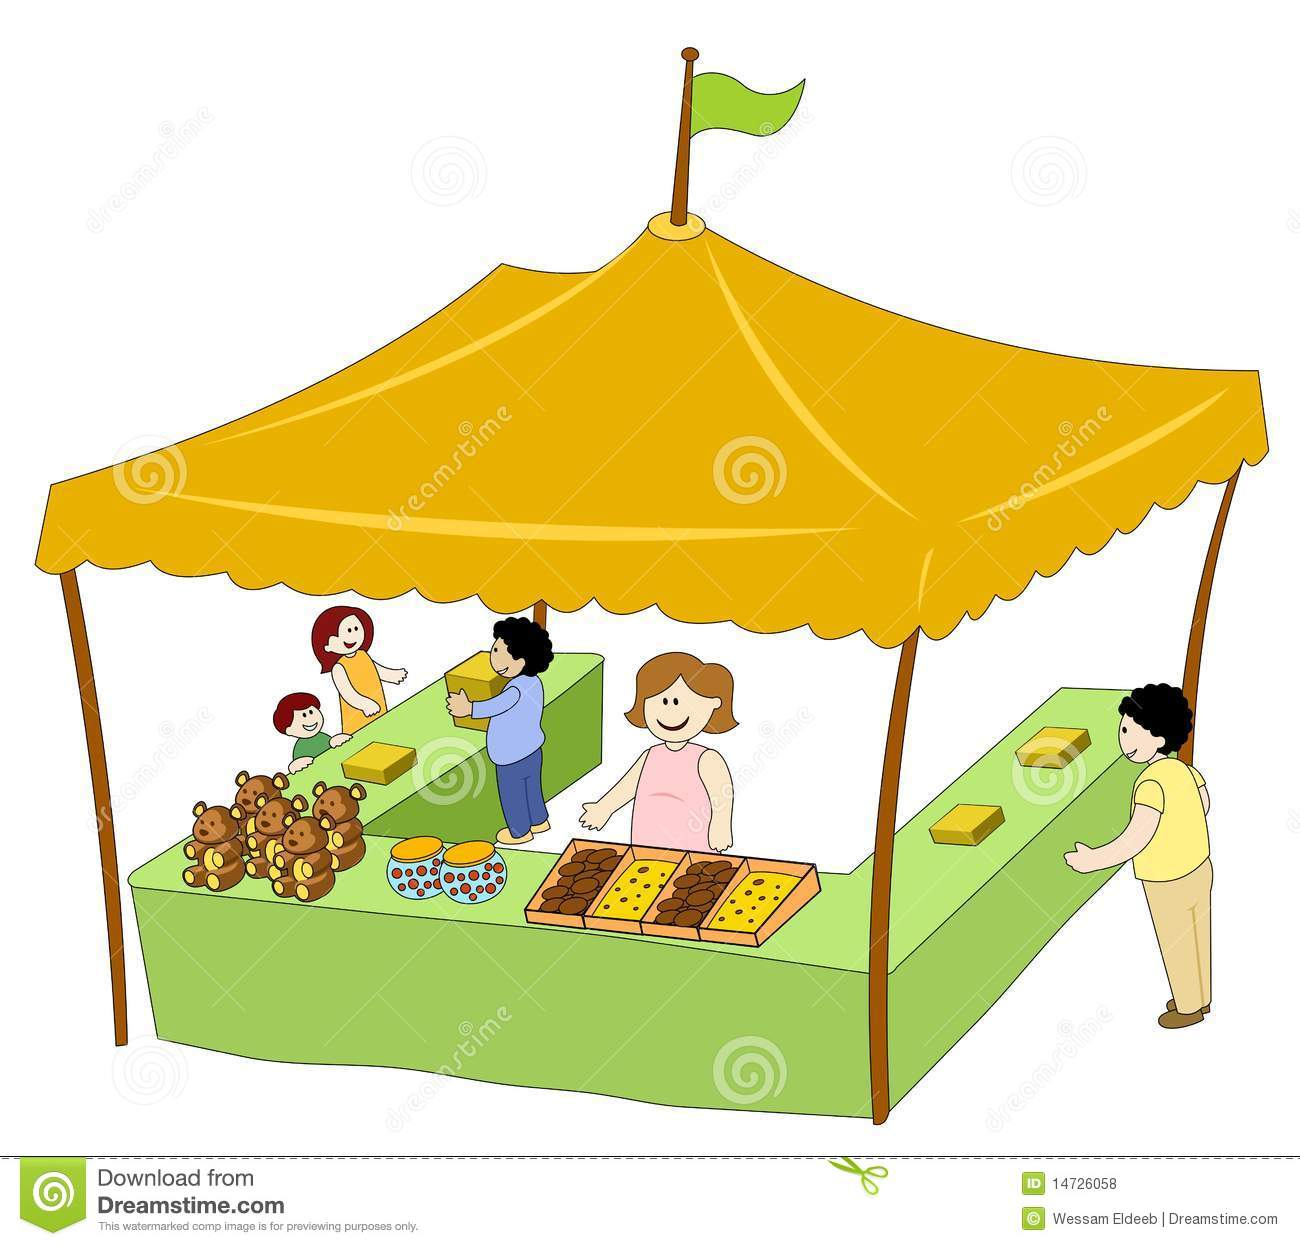 Food & Beverage Tent Royalty Free Stock Photos - Image: 14726058